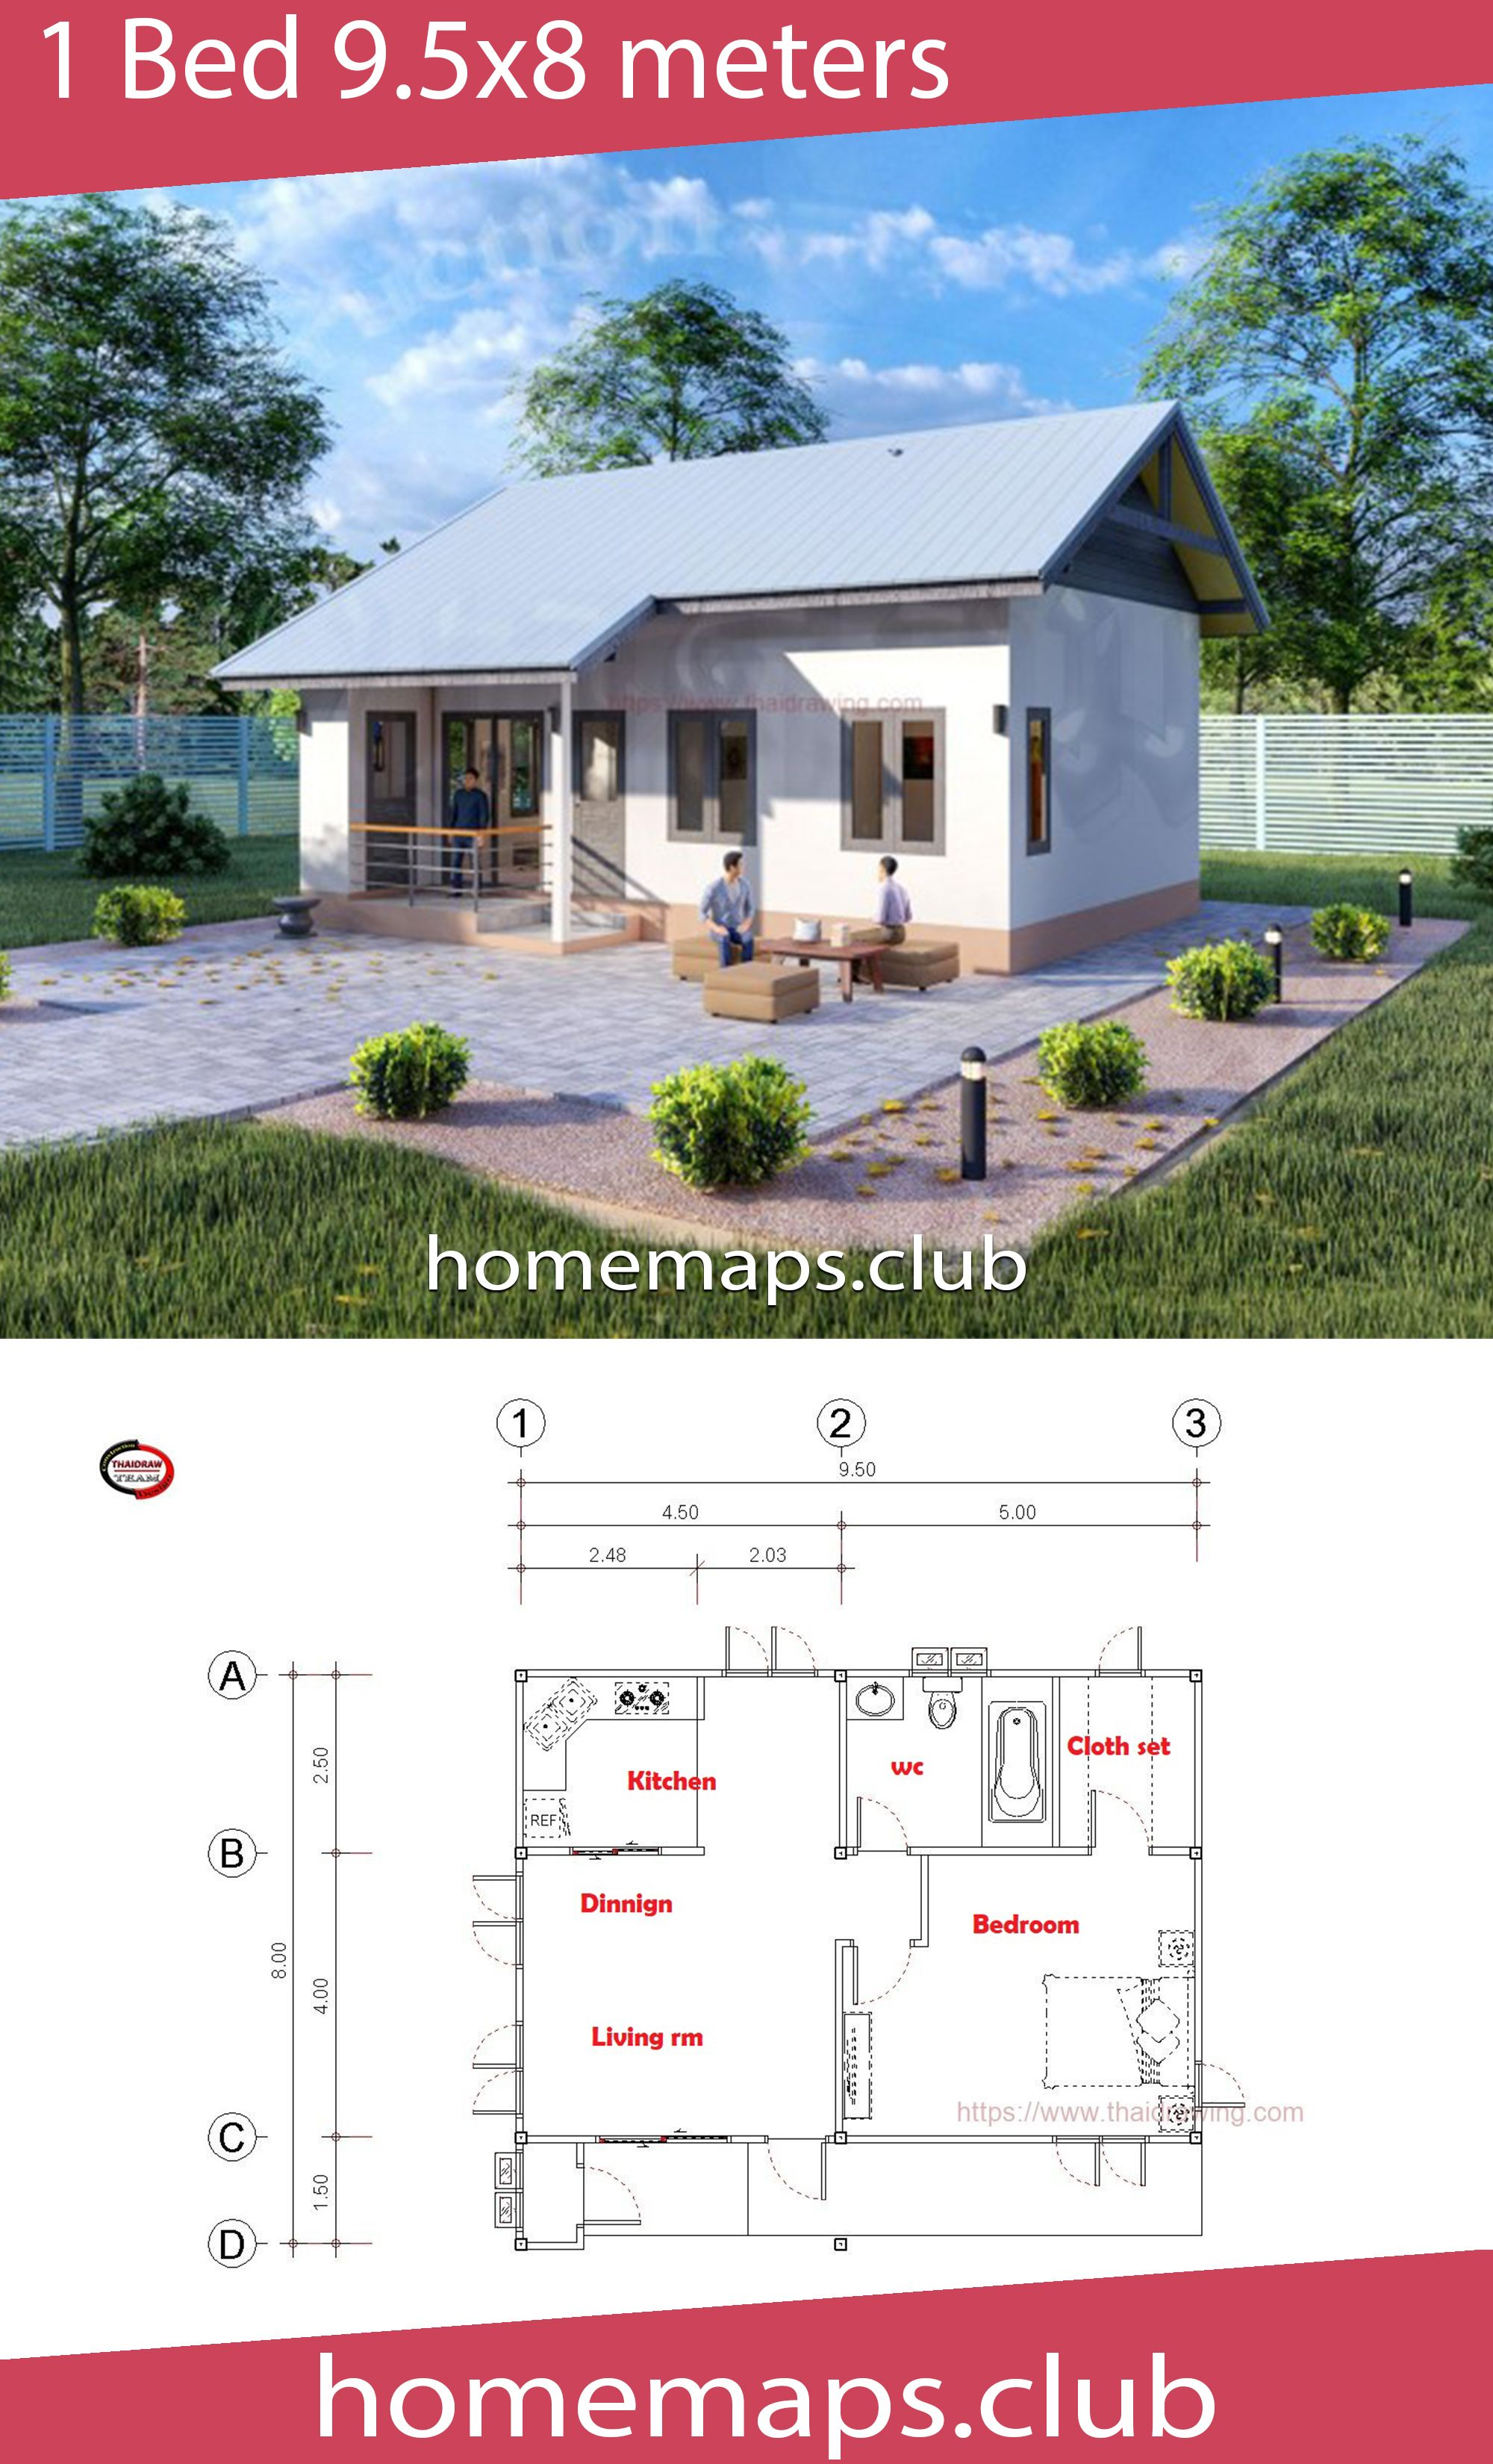 House Design 9 5x8 With 1 Bedrooms Home Maps House Design Small House Plans House Map